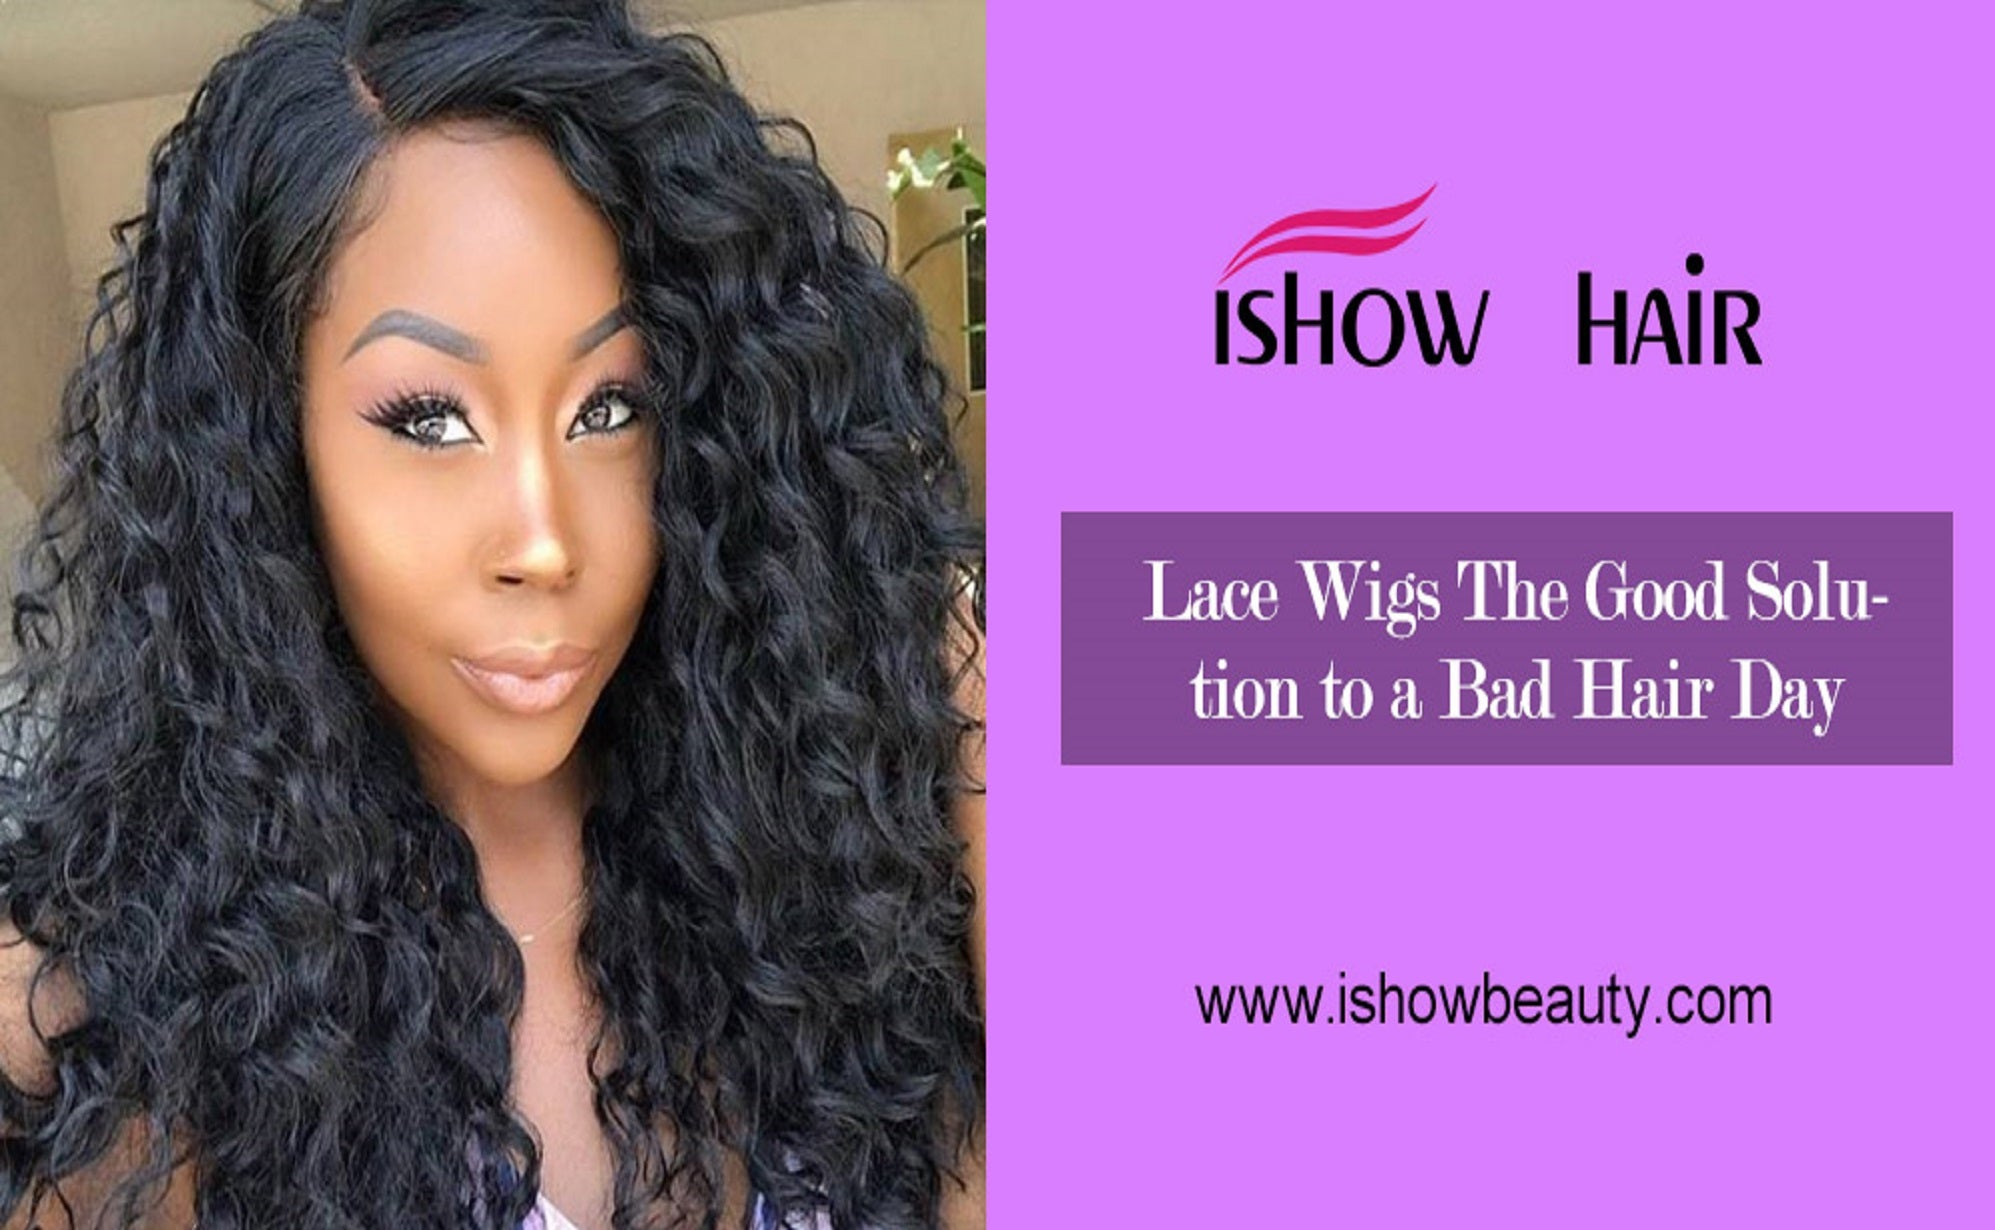 Lace Wigs The Good Solution to a Bad Hair Day